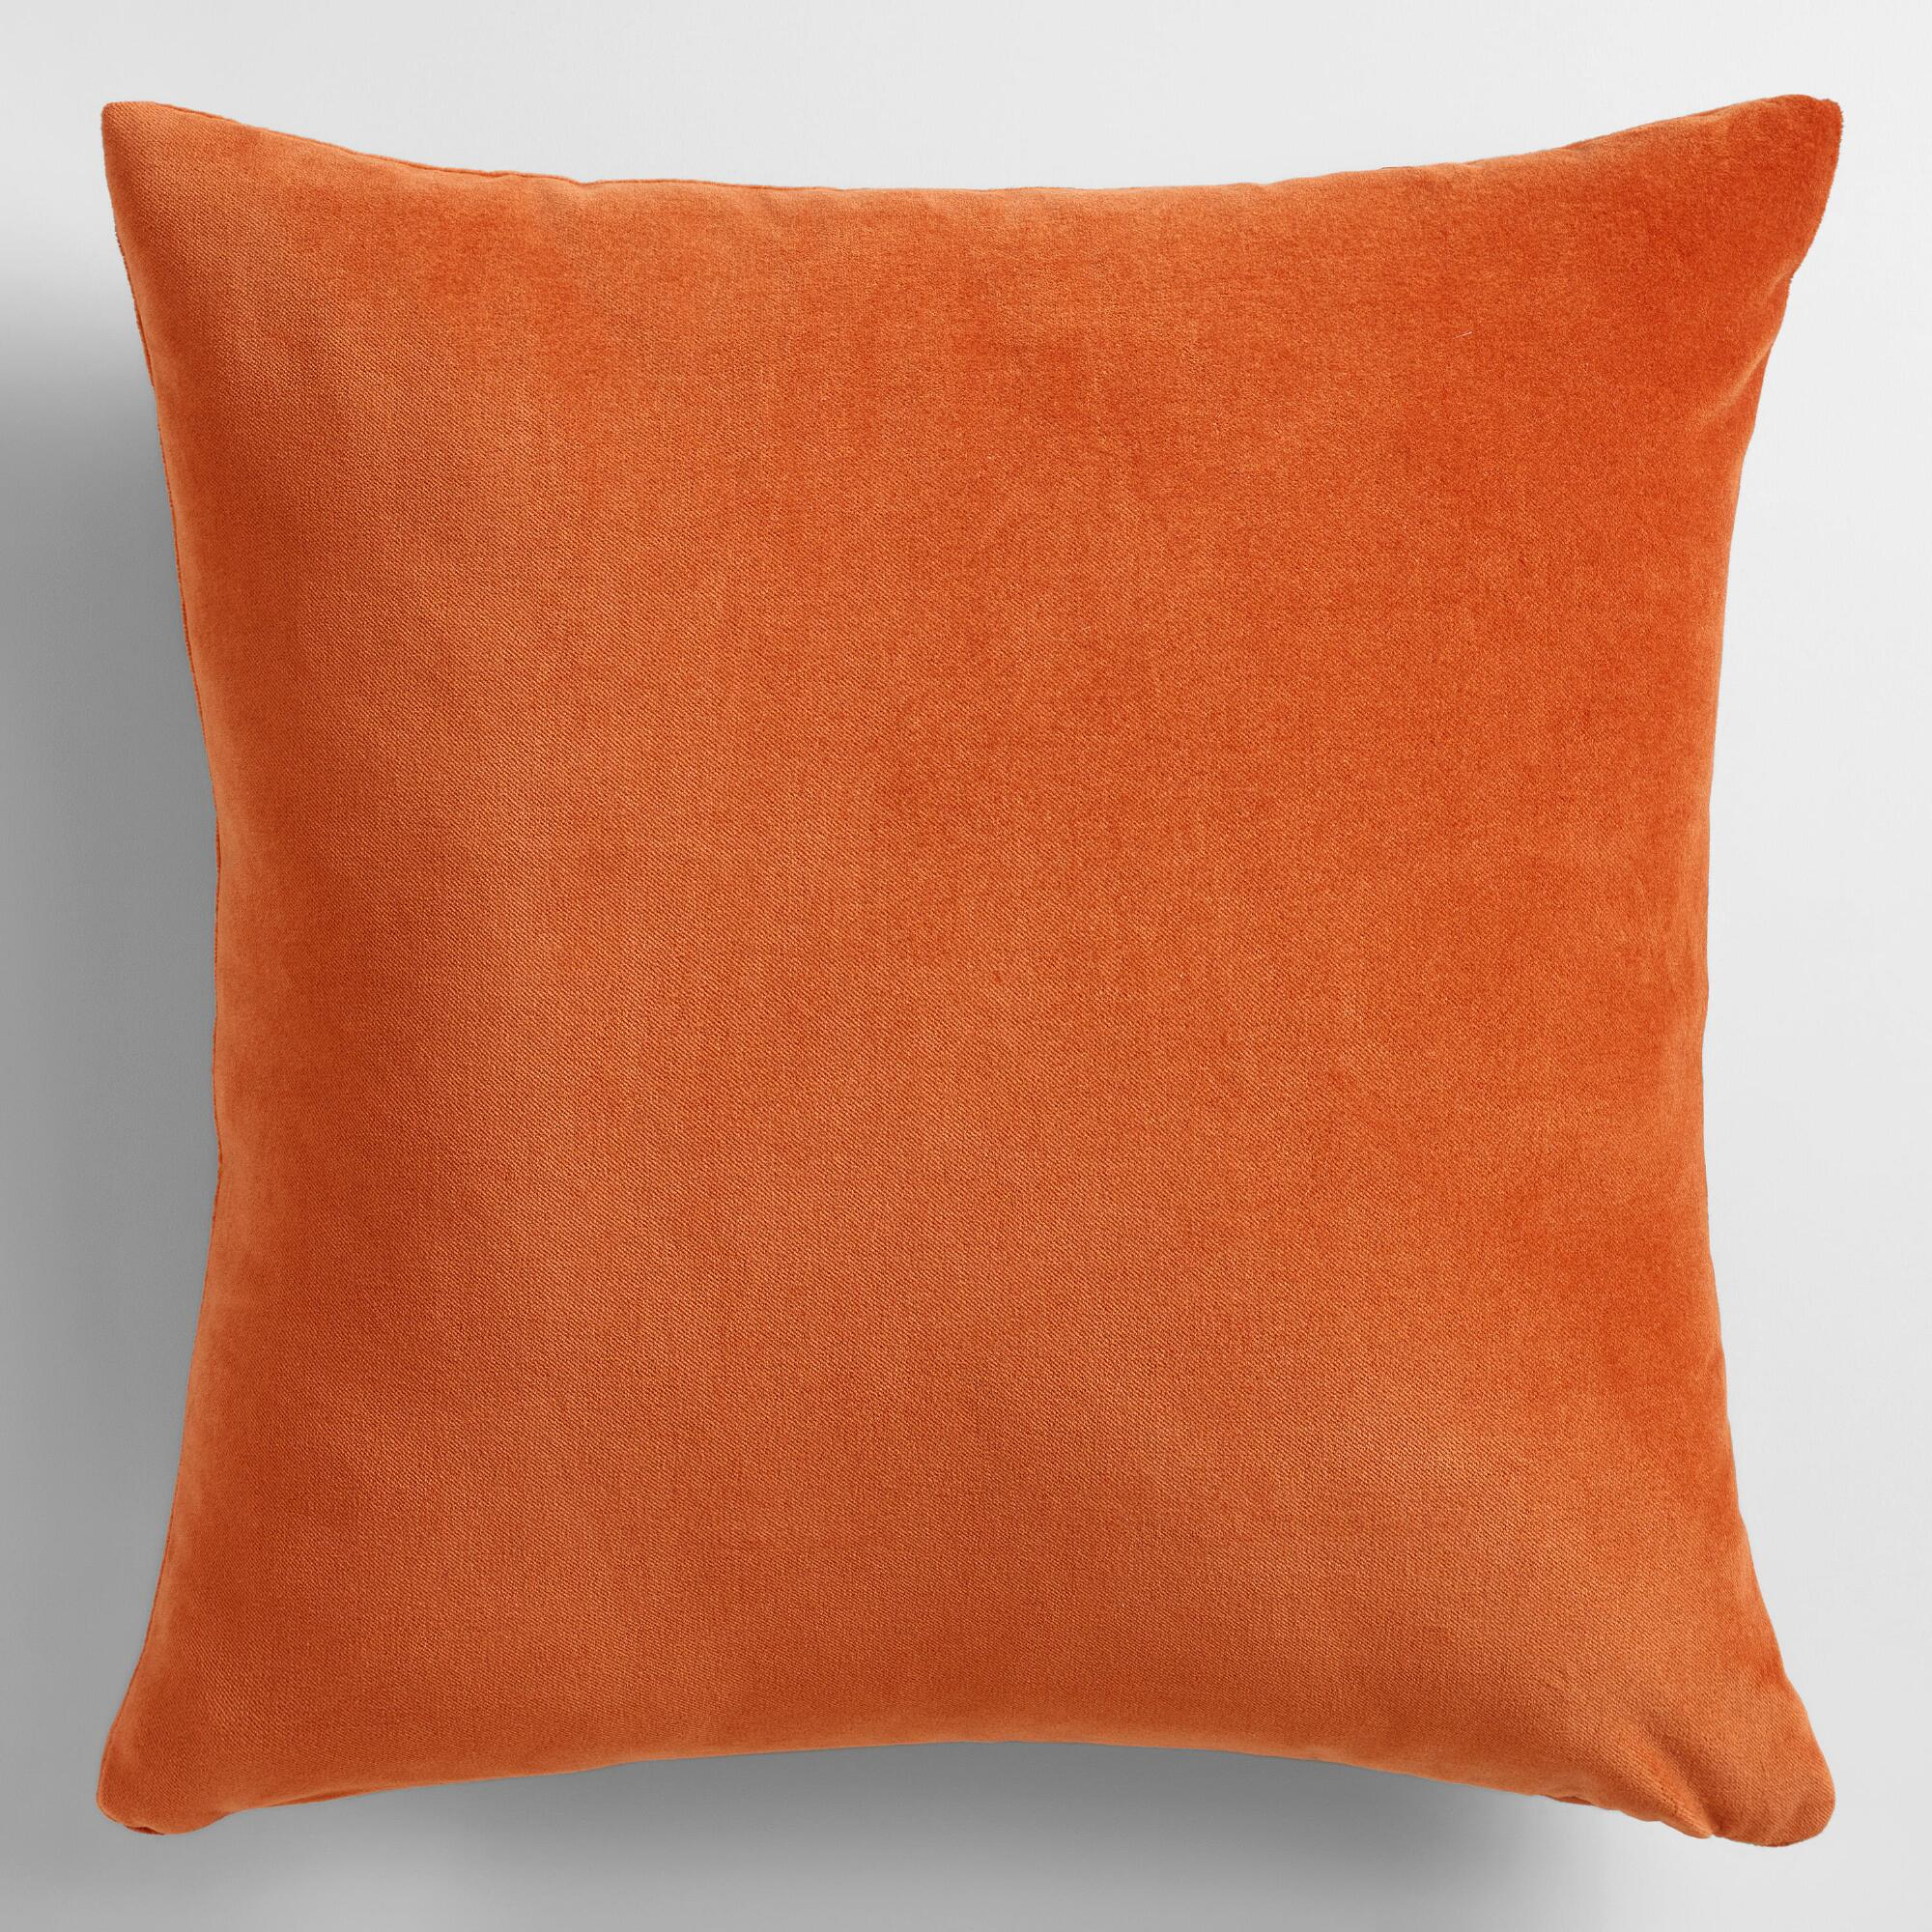 Throw Pillows With Orange : Rooibos Orange Velvet Throw Pillow World Market